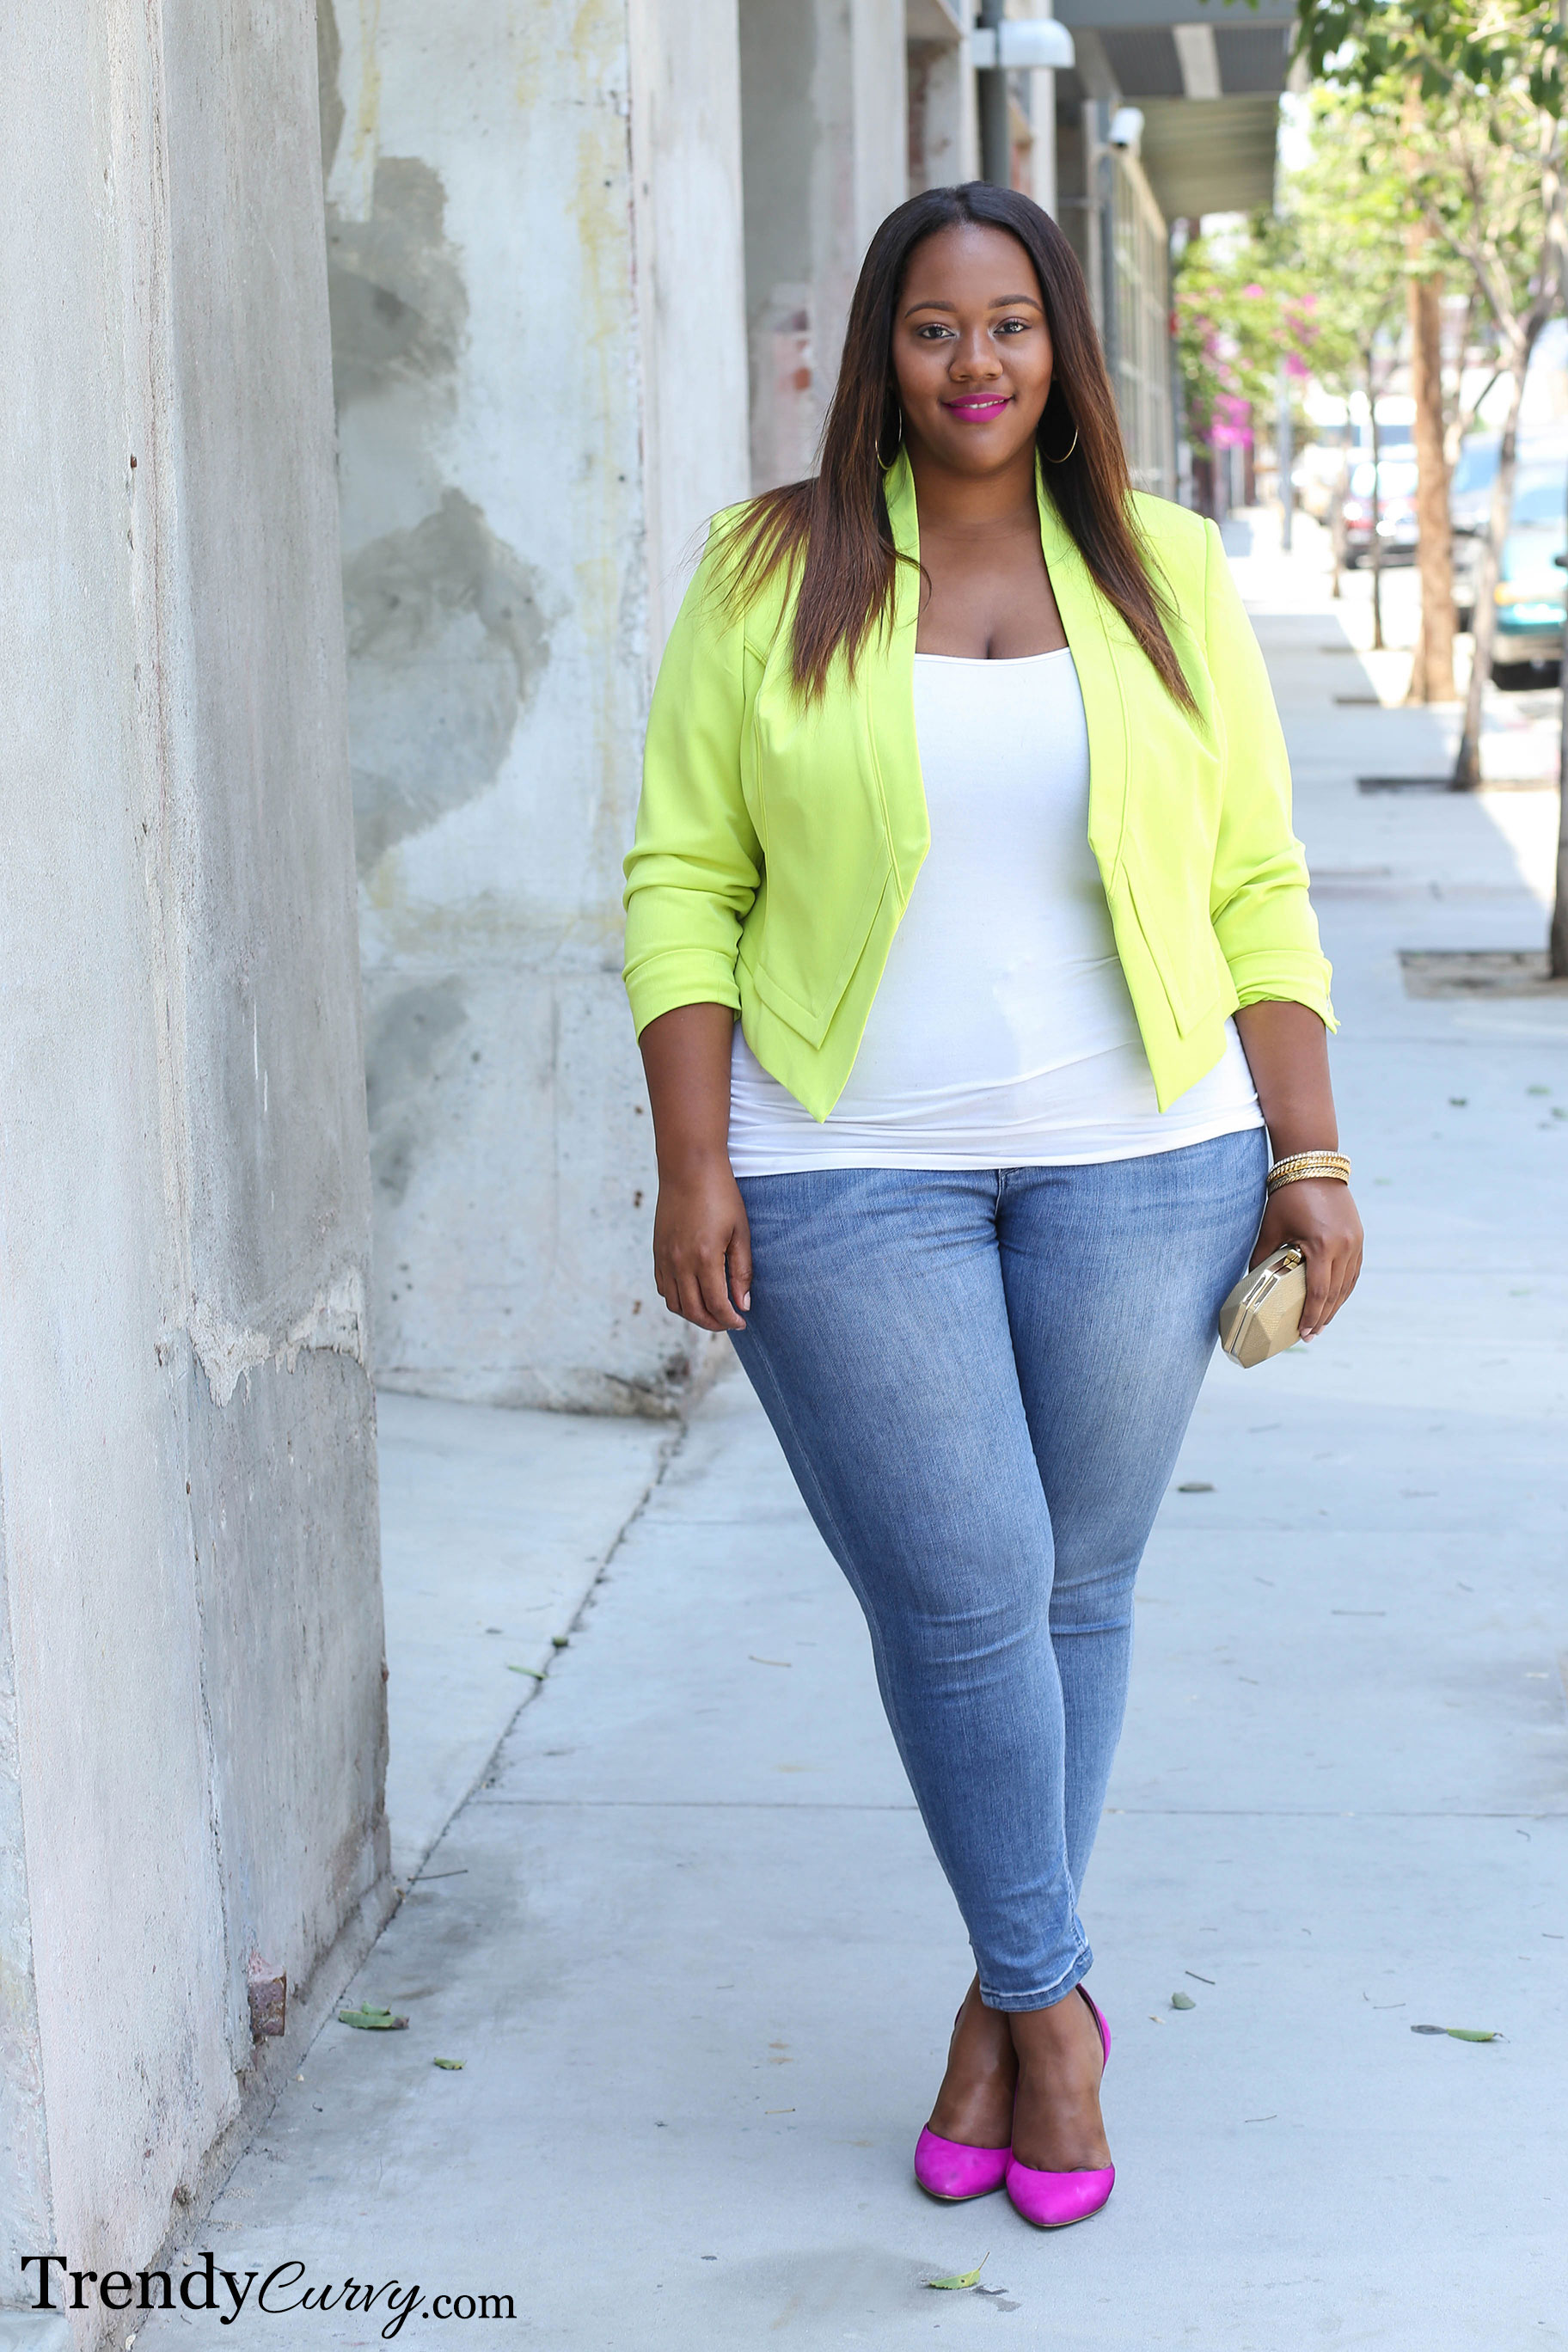 Trendy Curvy - Page 68 of 117 - Plus Size Fashion BlogTrendy Curvy